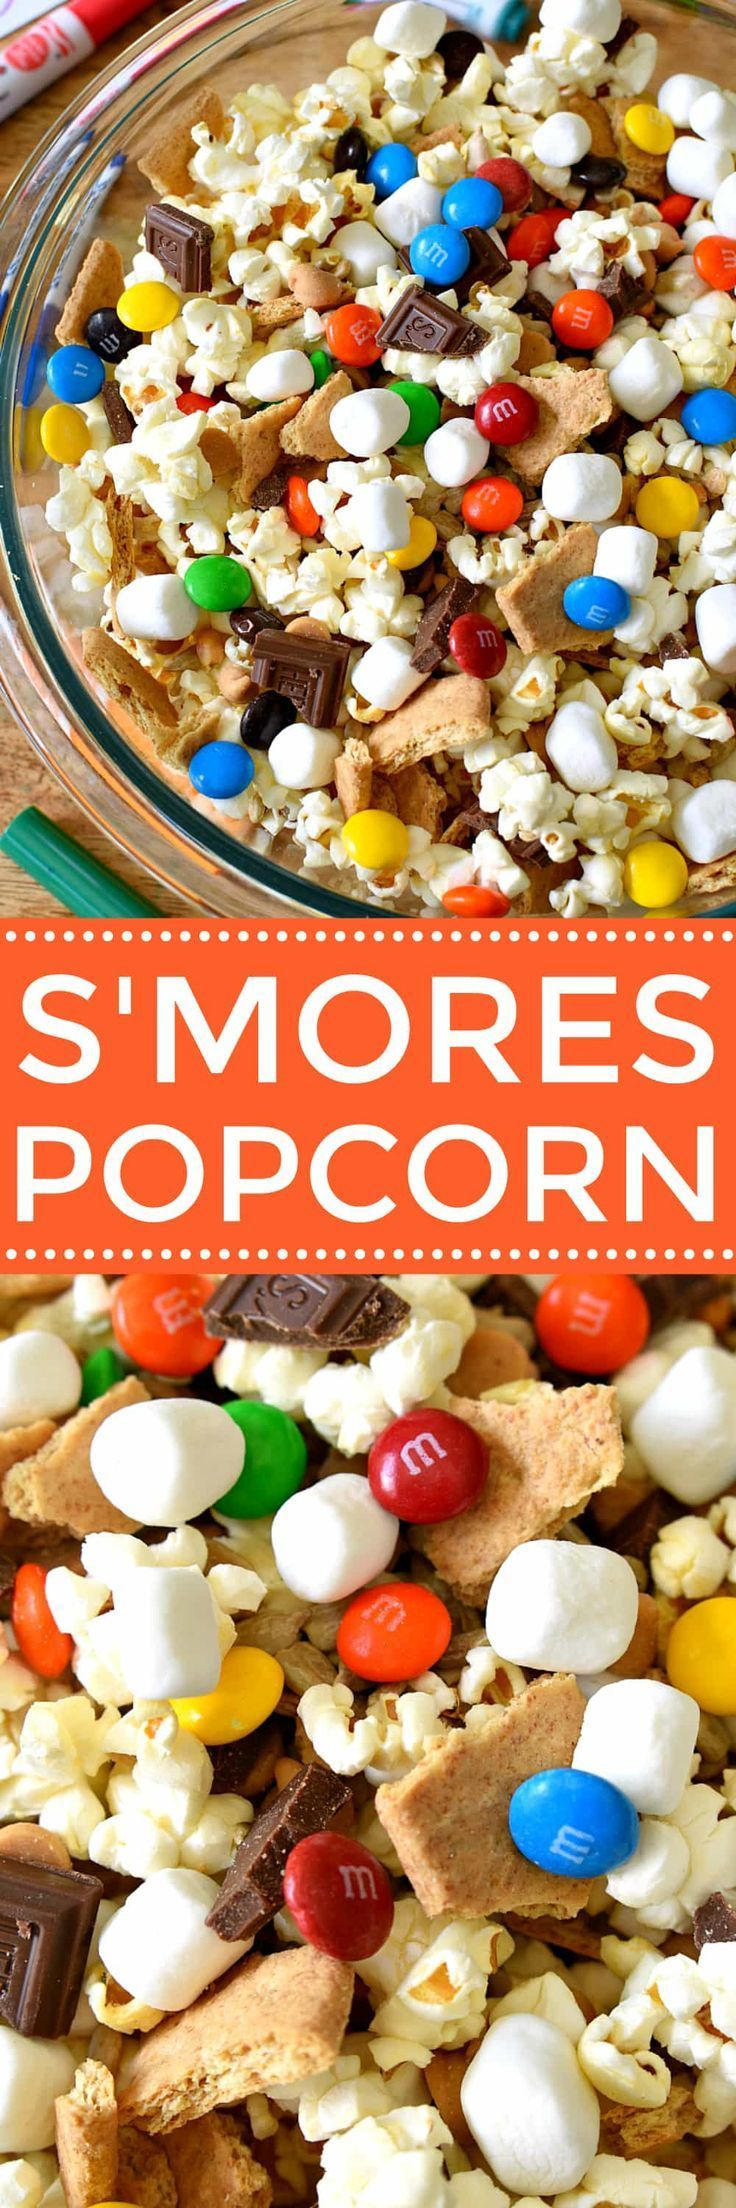 cool S'mores Popcorn and Fruit Shoot juice drinks - 2 simple ways to celebrate ch...by http://dezdemooncooking4u.gdn